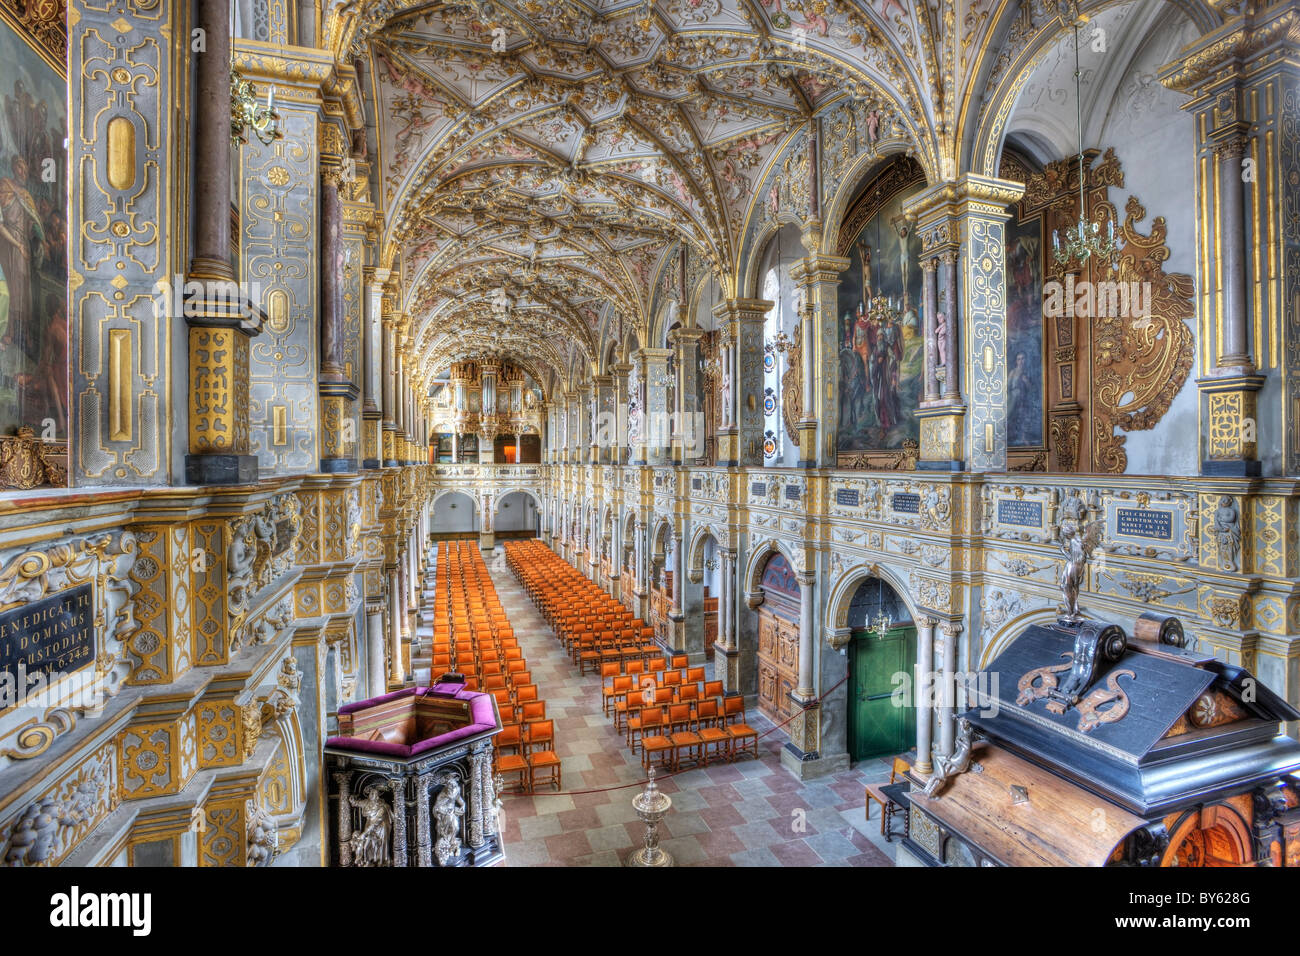 The Chapel at Frederiksborg Castle in Denmark - Stock Image